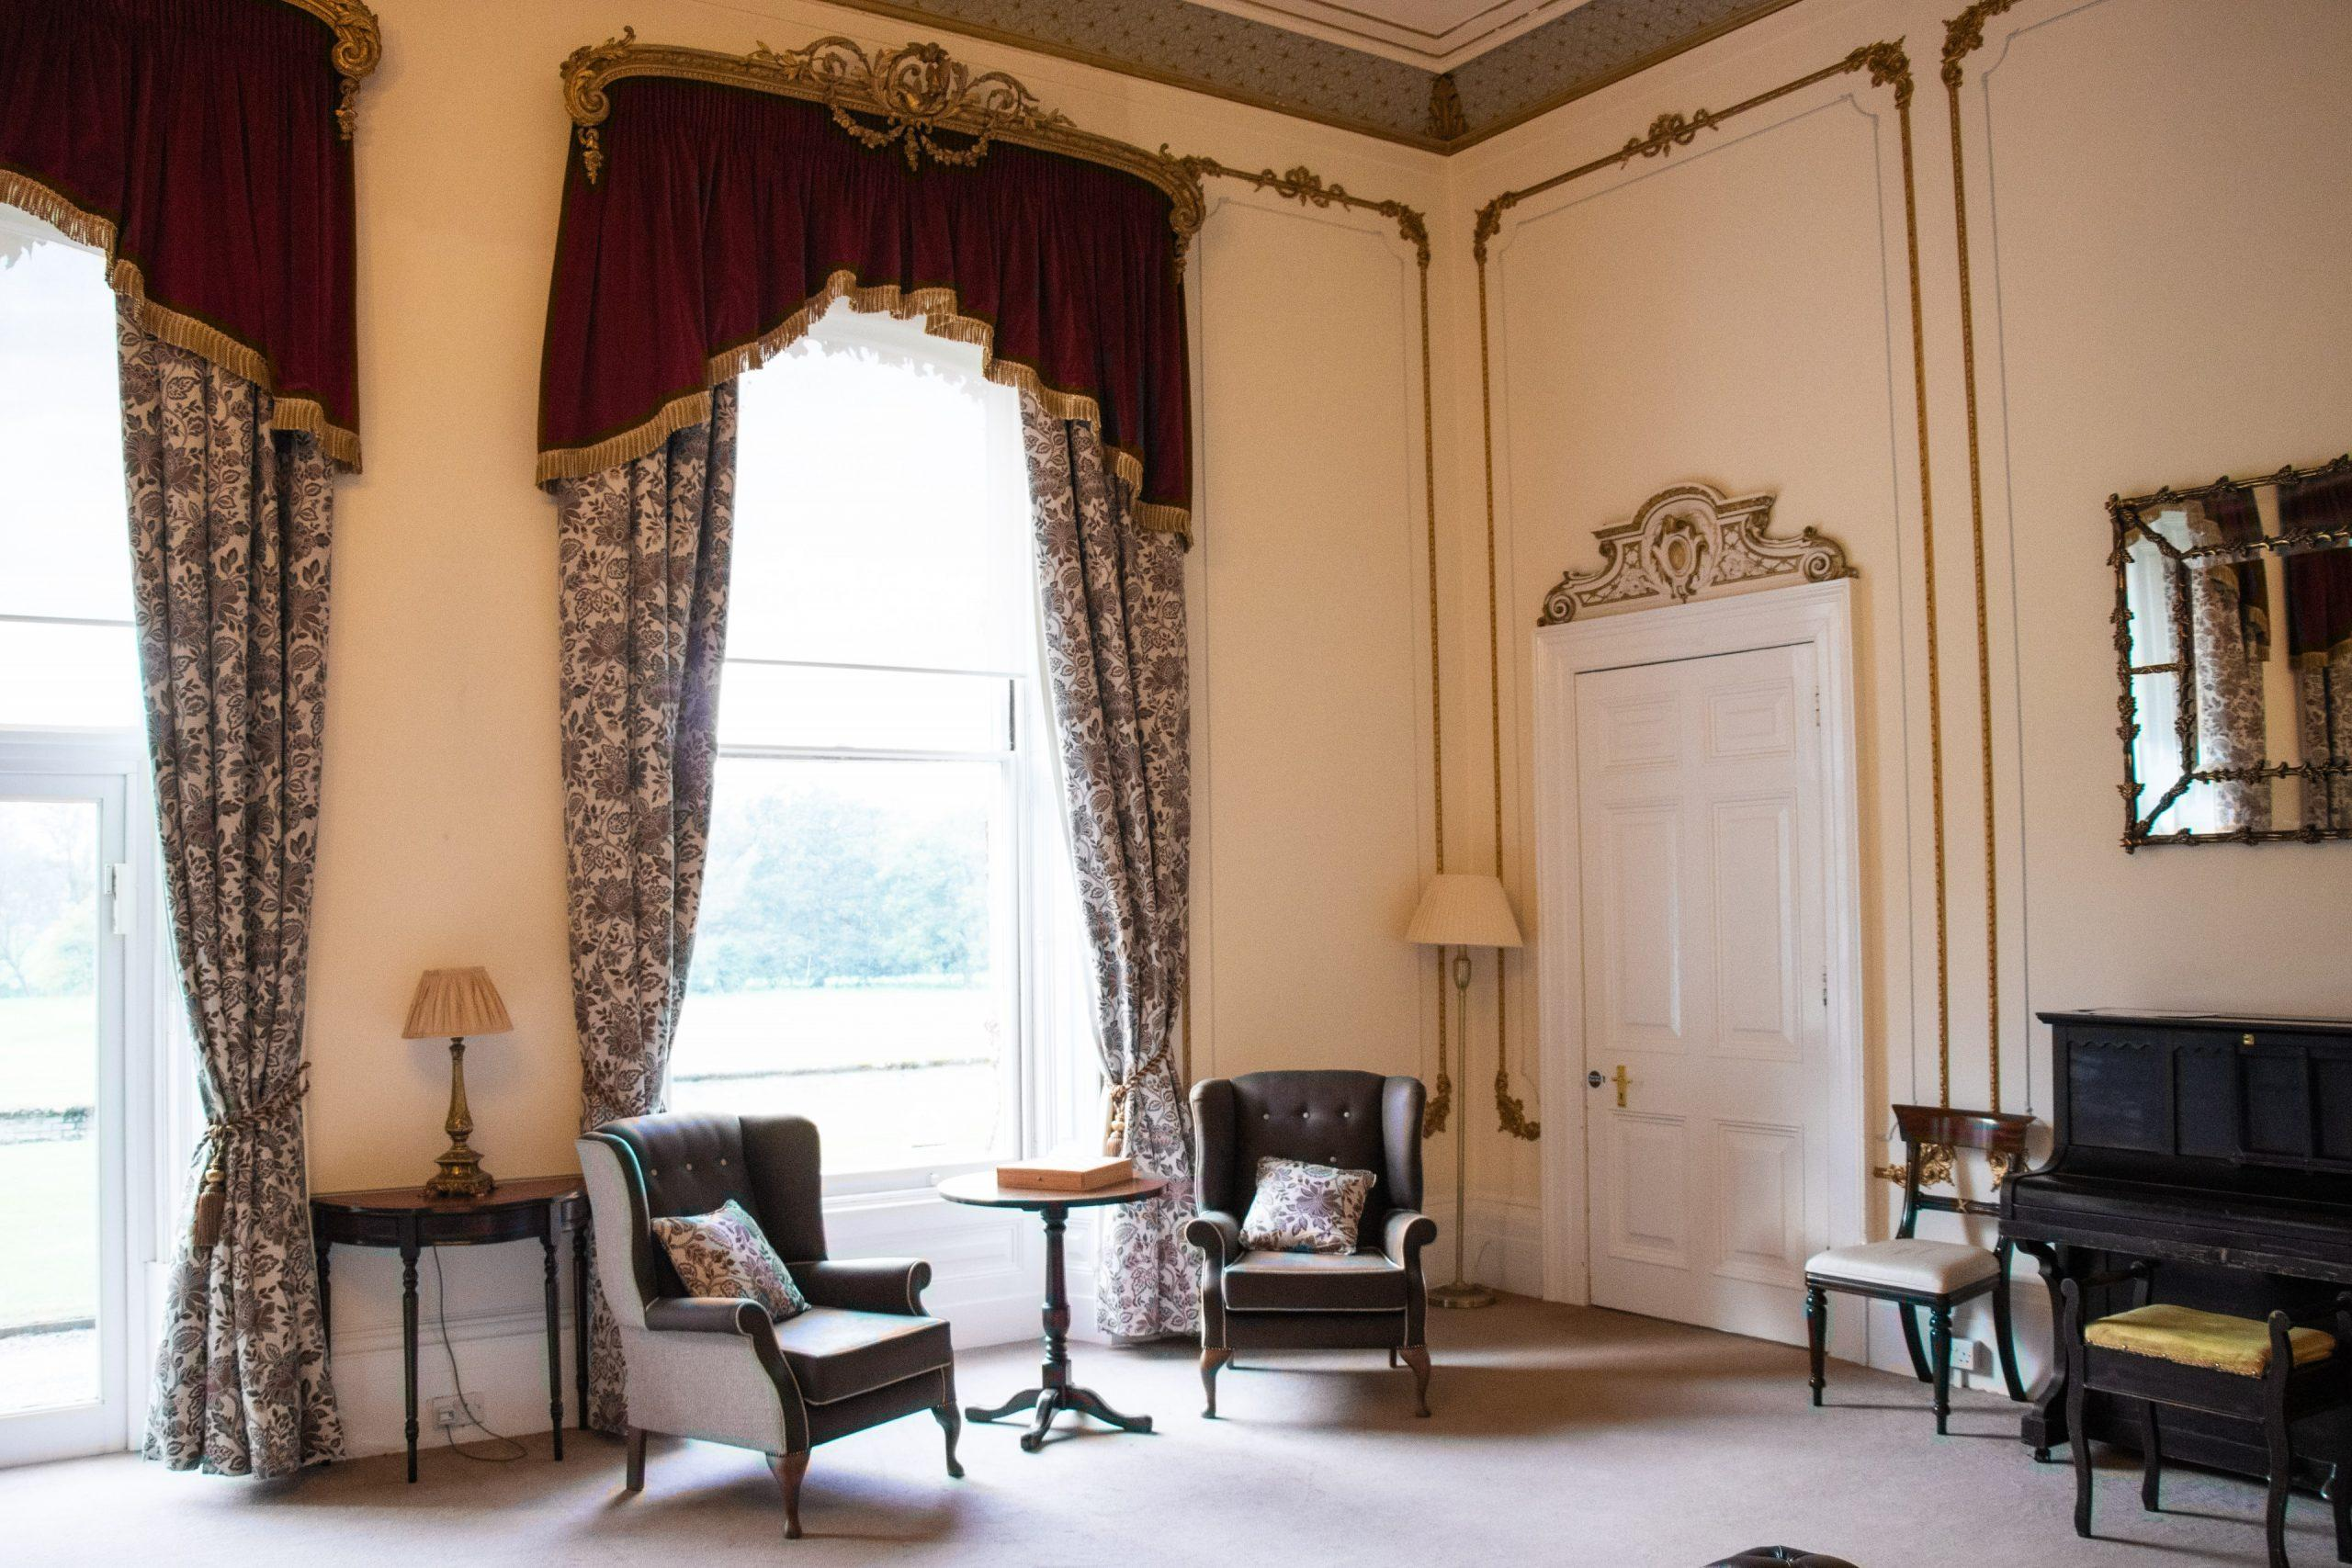 Fire Retardant Curtains and Soft Furnishings Care and Laundering Guide